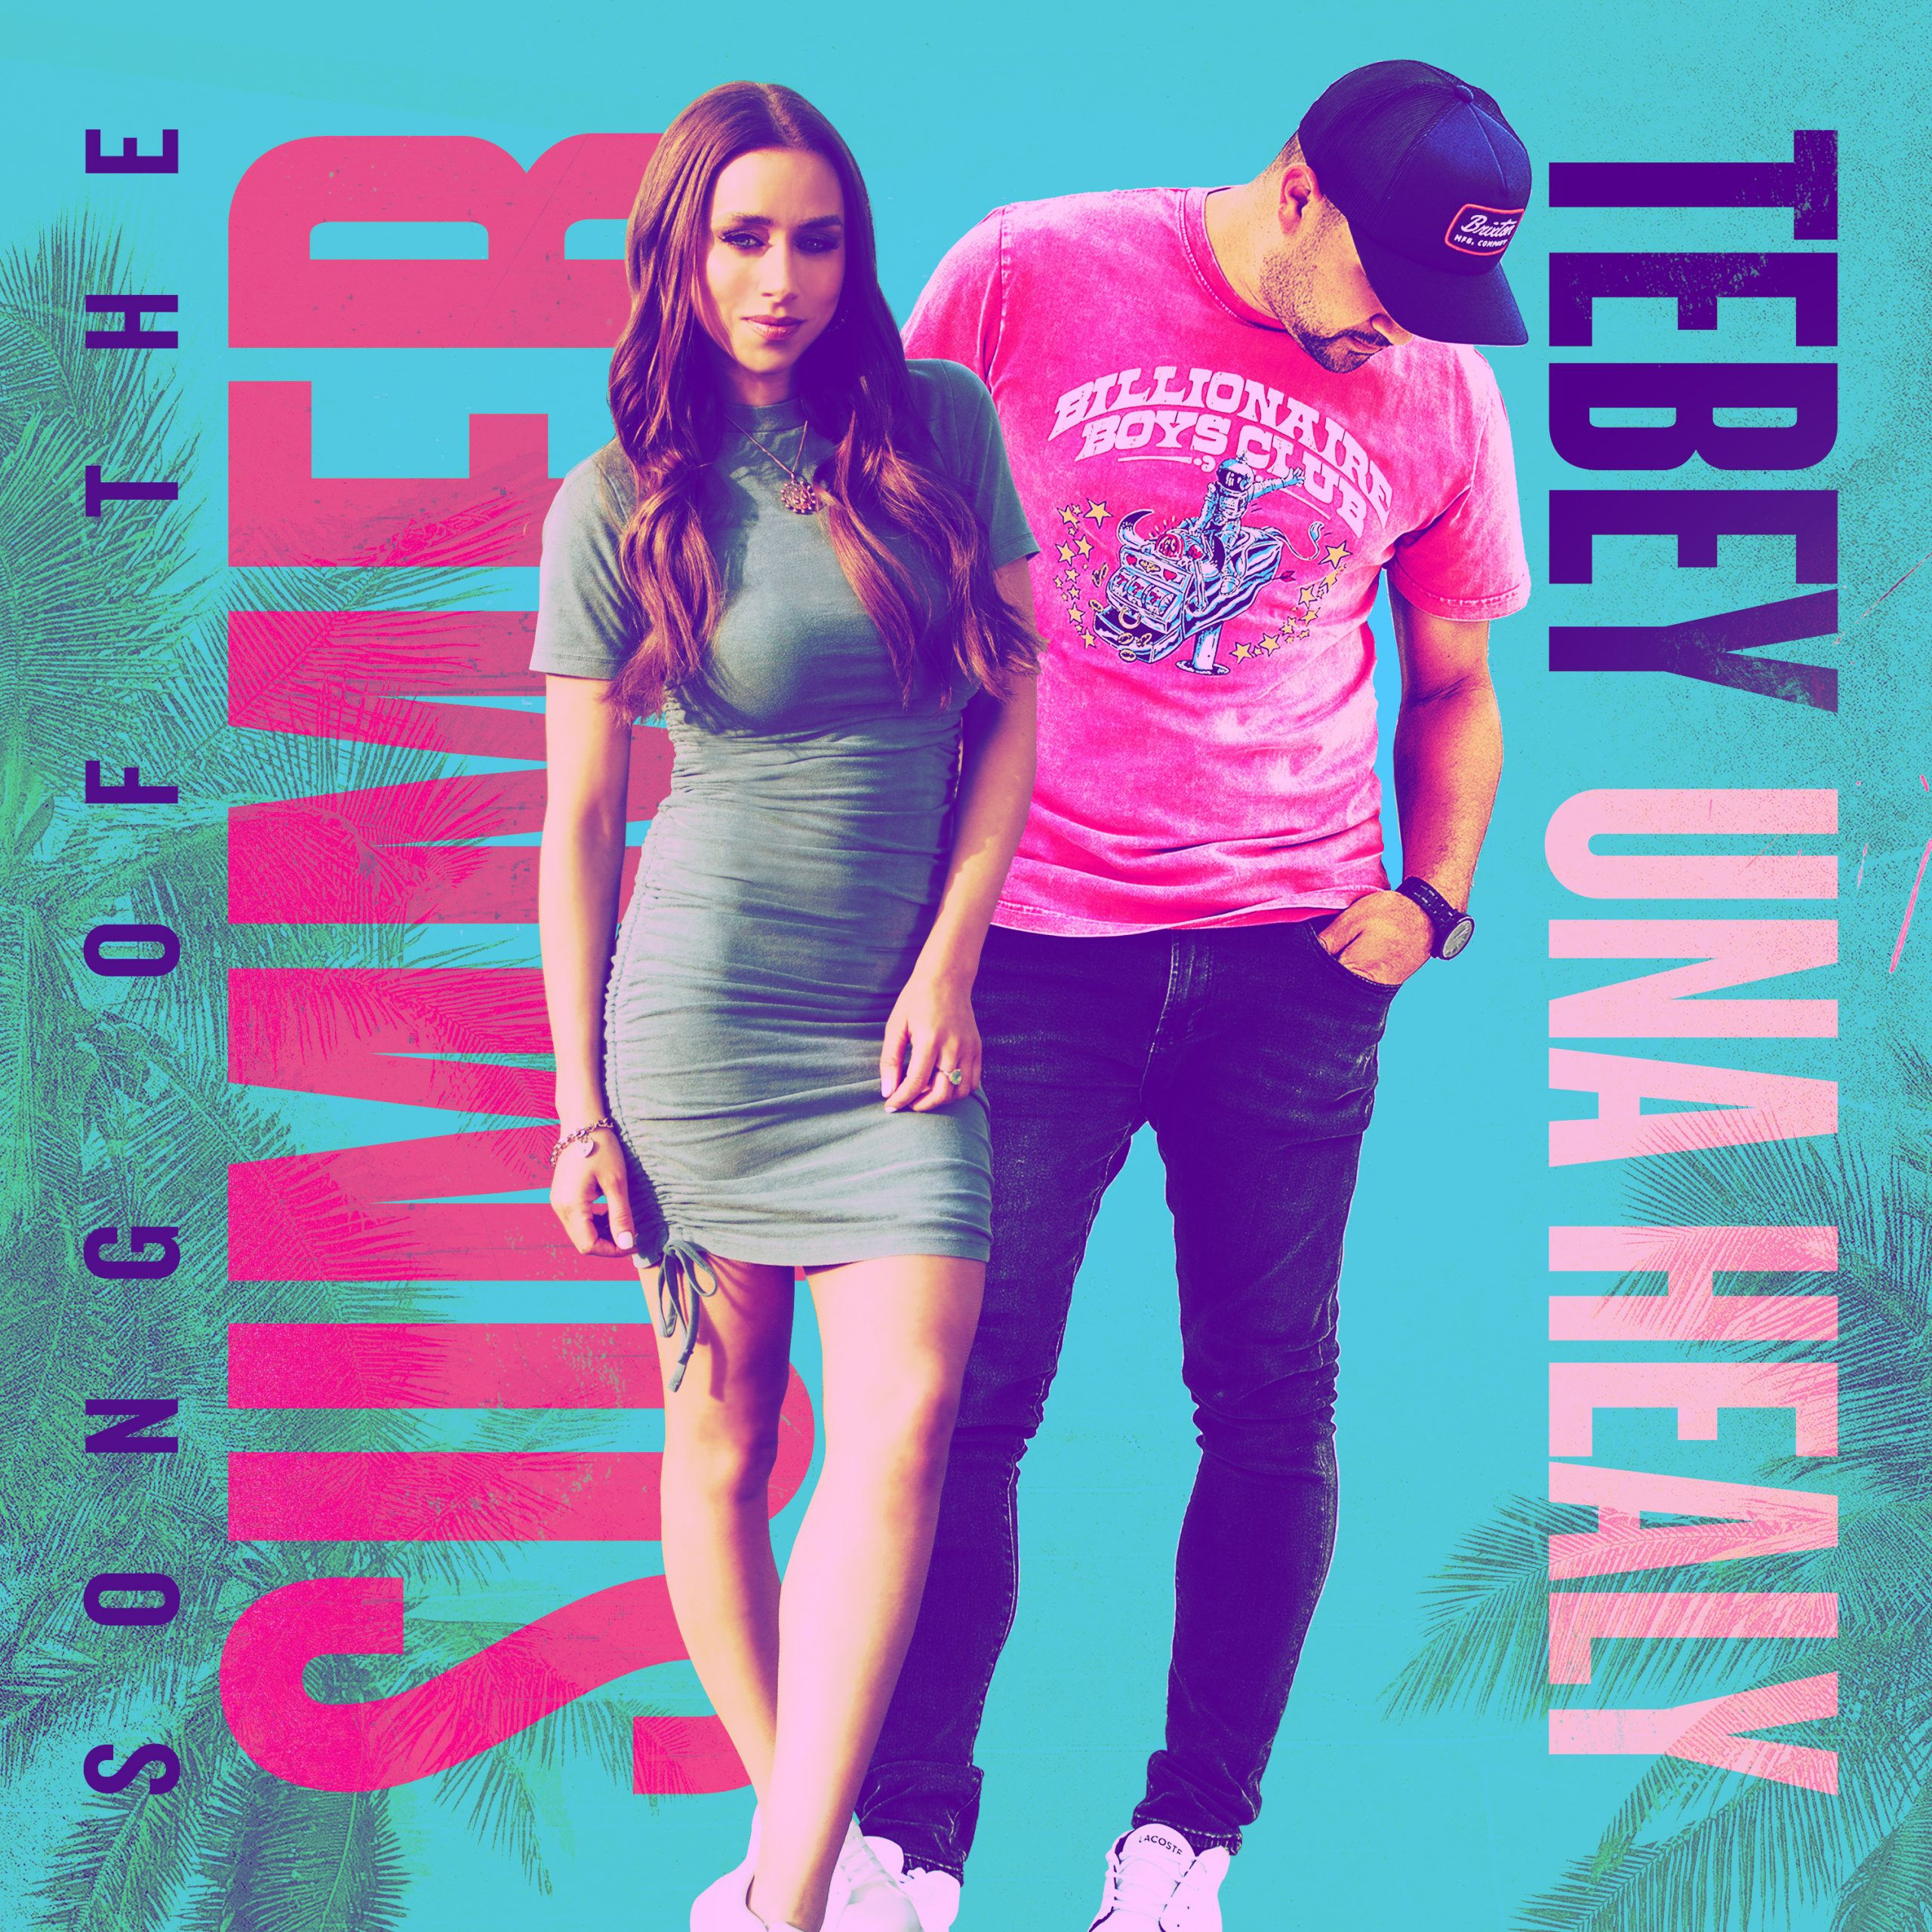 """Read more about the article Canadian Country Artist Tebey Releases Vibrant New Single """"Song of the Summer"""" With Una Healy"""